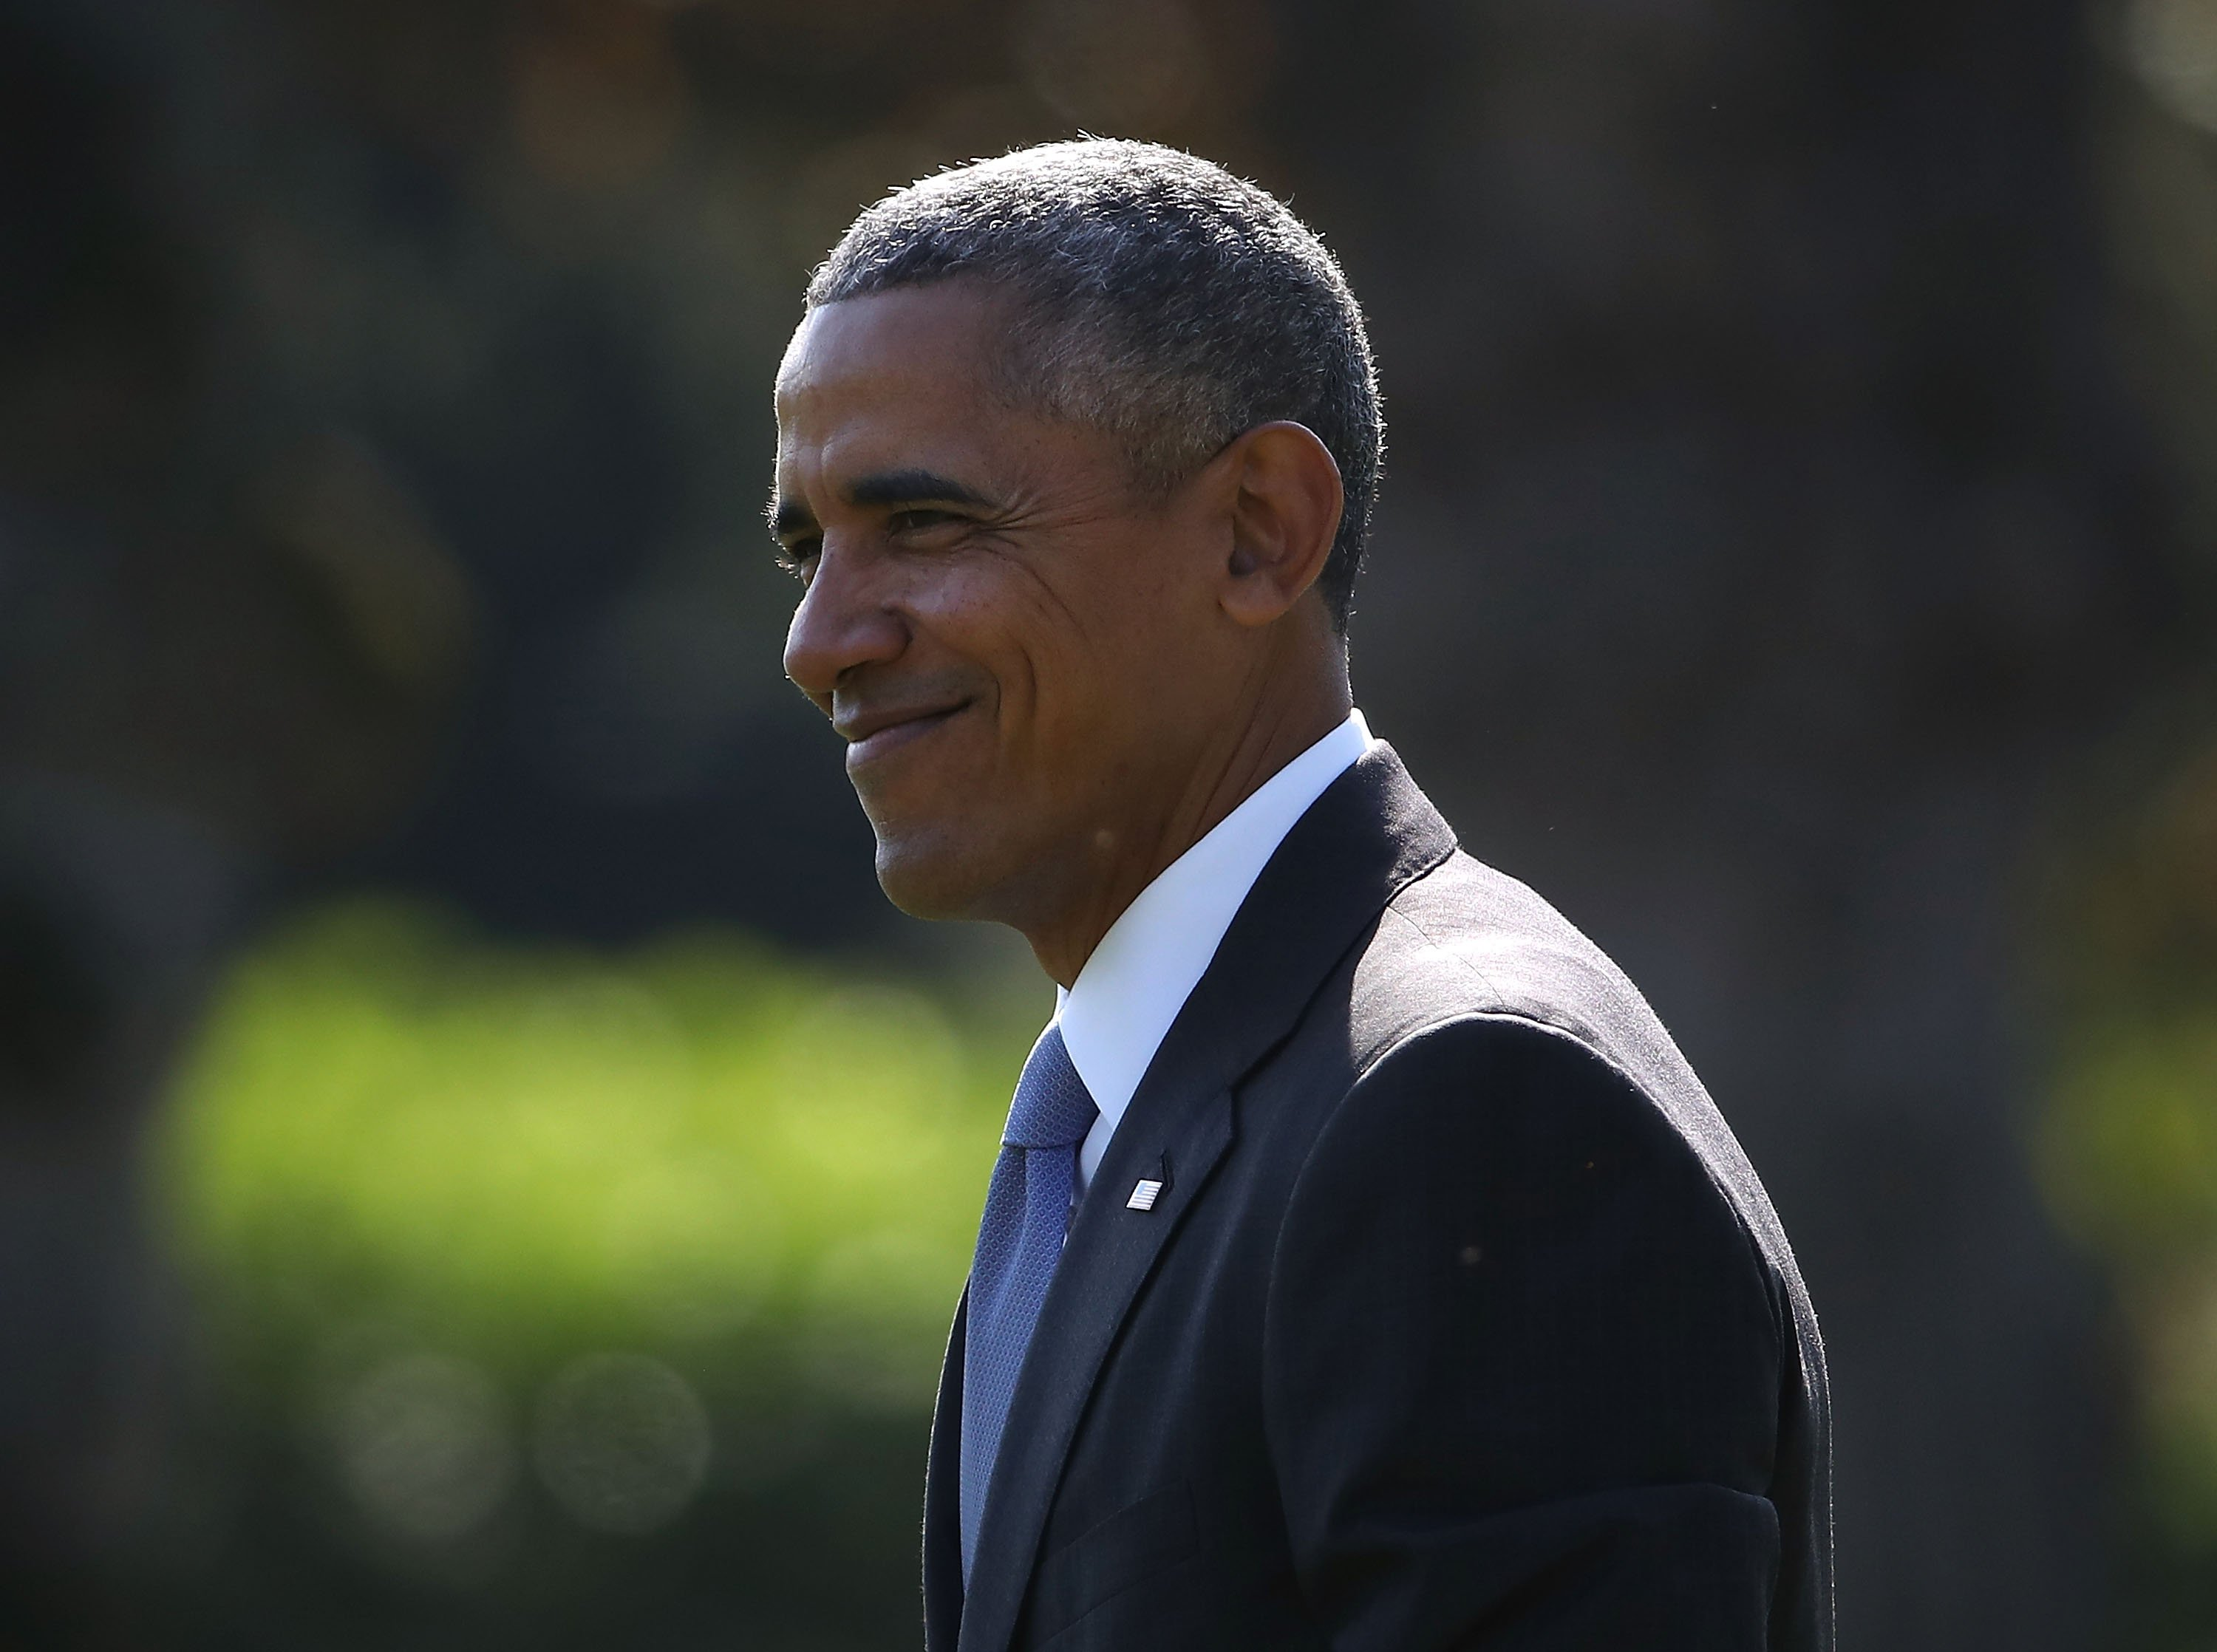 The 44th President of the United States Barack Obama outside the White House in Washington D.C. | Photo: Getty Images